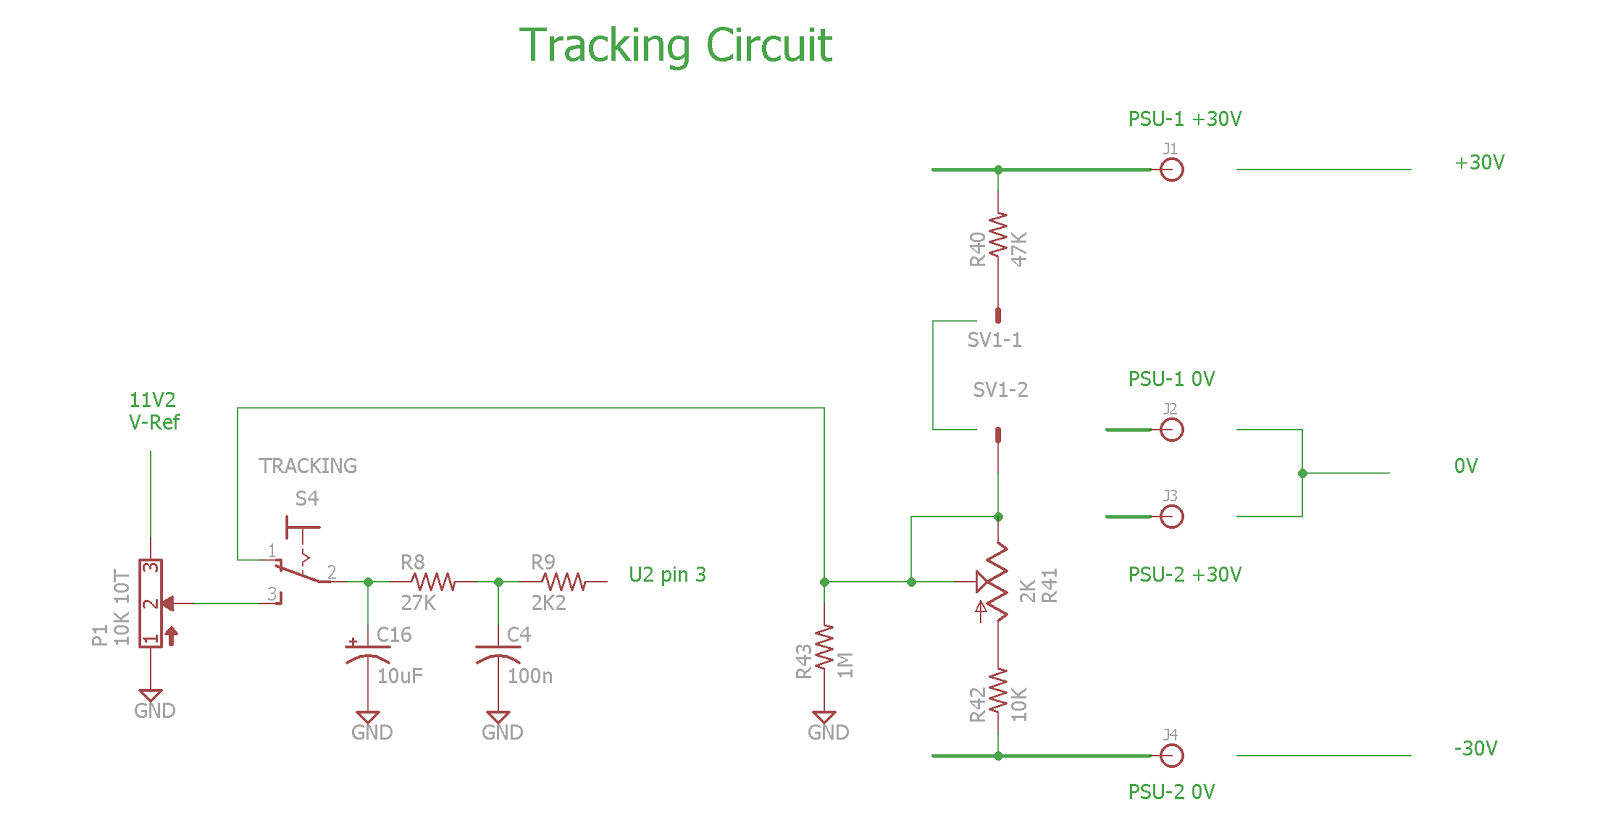 Pauls Diy Electronics Blog Tuning A 030v Dc 03a Psu Kit Ac Led Circuit Diagram In Addition 12 Volt Voltage Regulator The Slave Supply Must Be Modified As Follows Connection Of Wiper Setting Potmeter P1 Disconnected And Fed To Switch